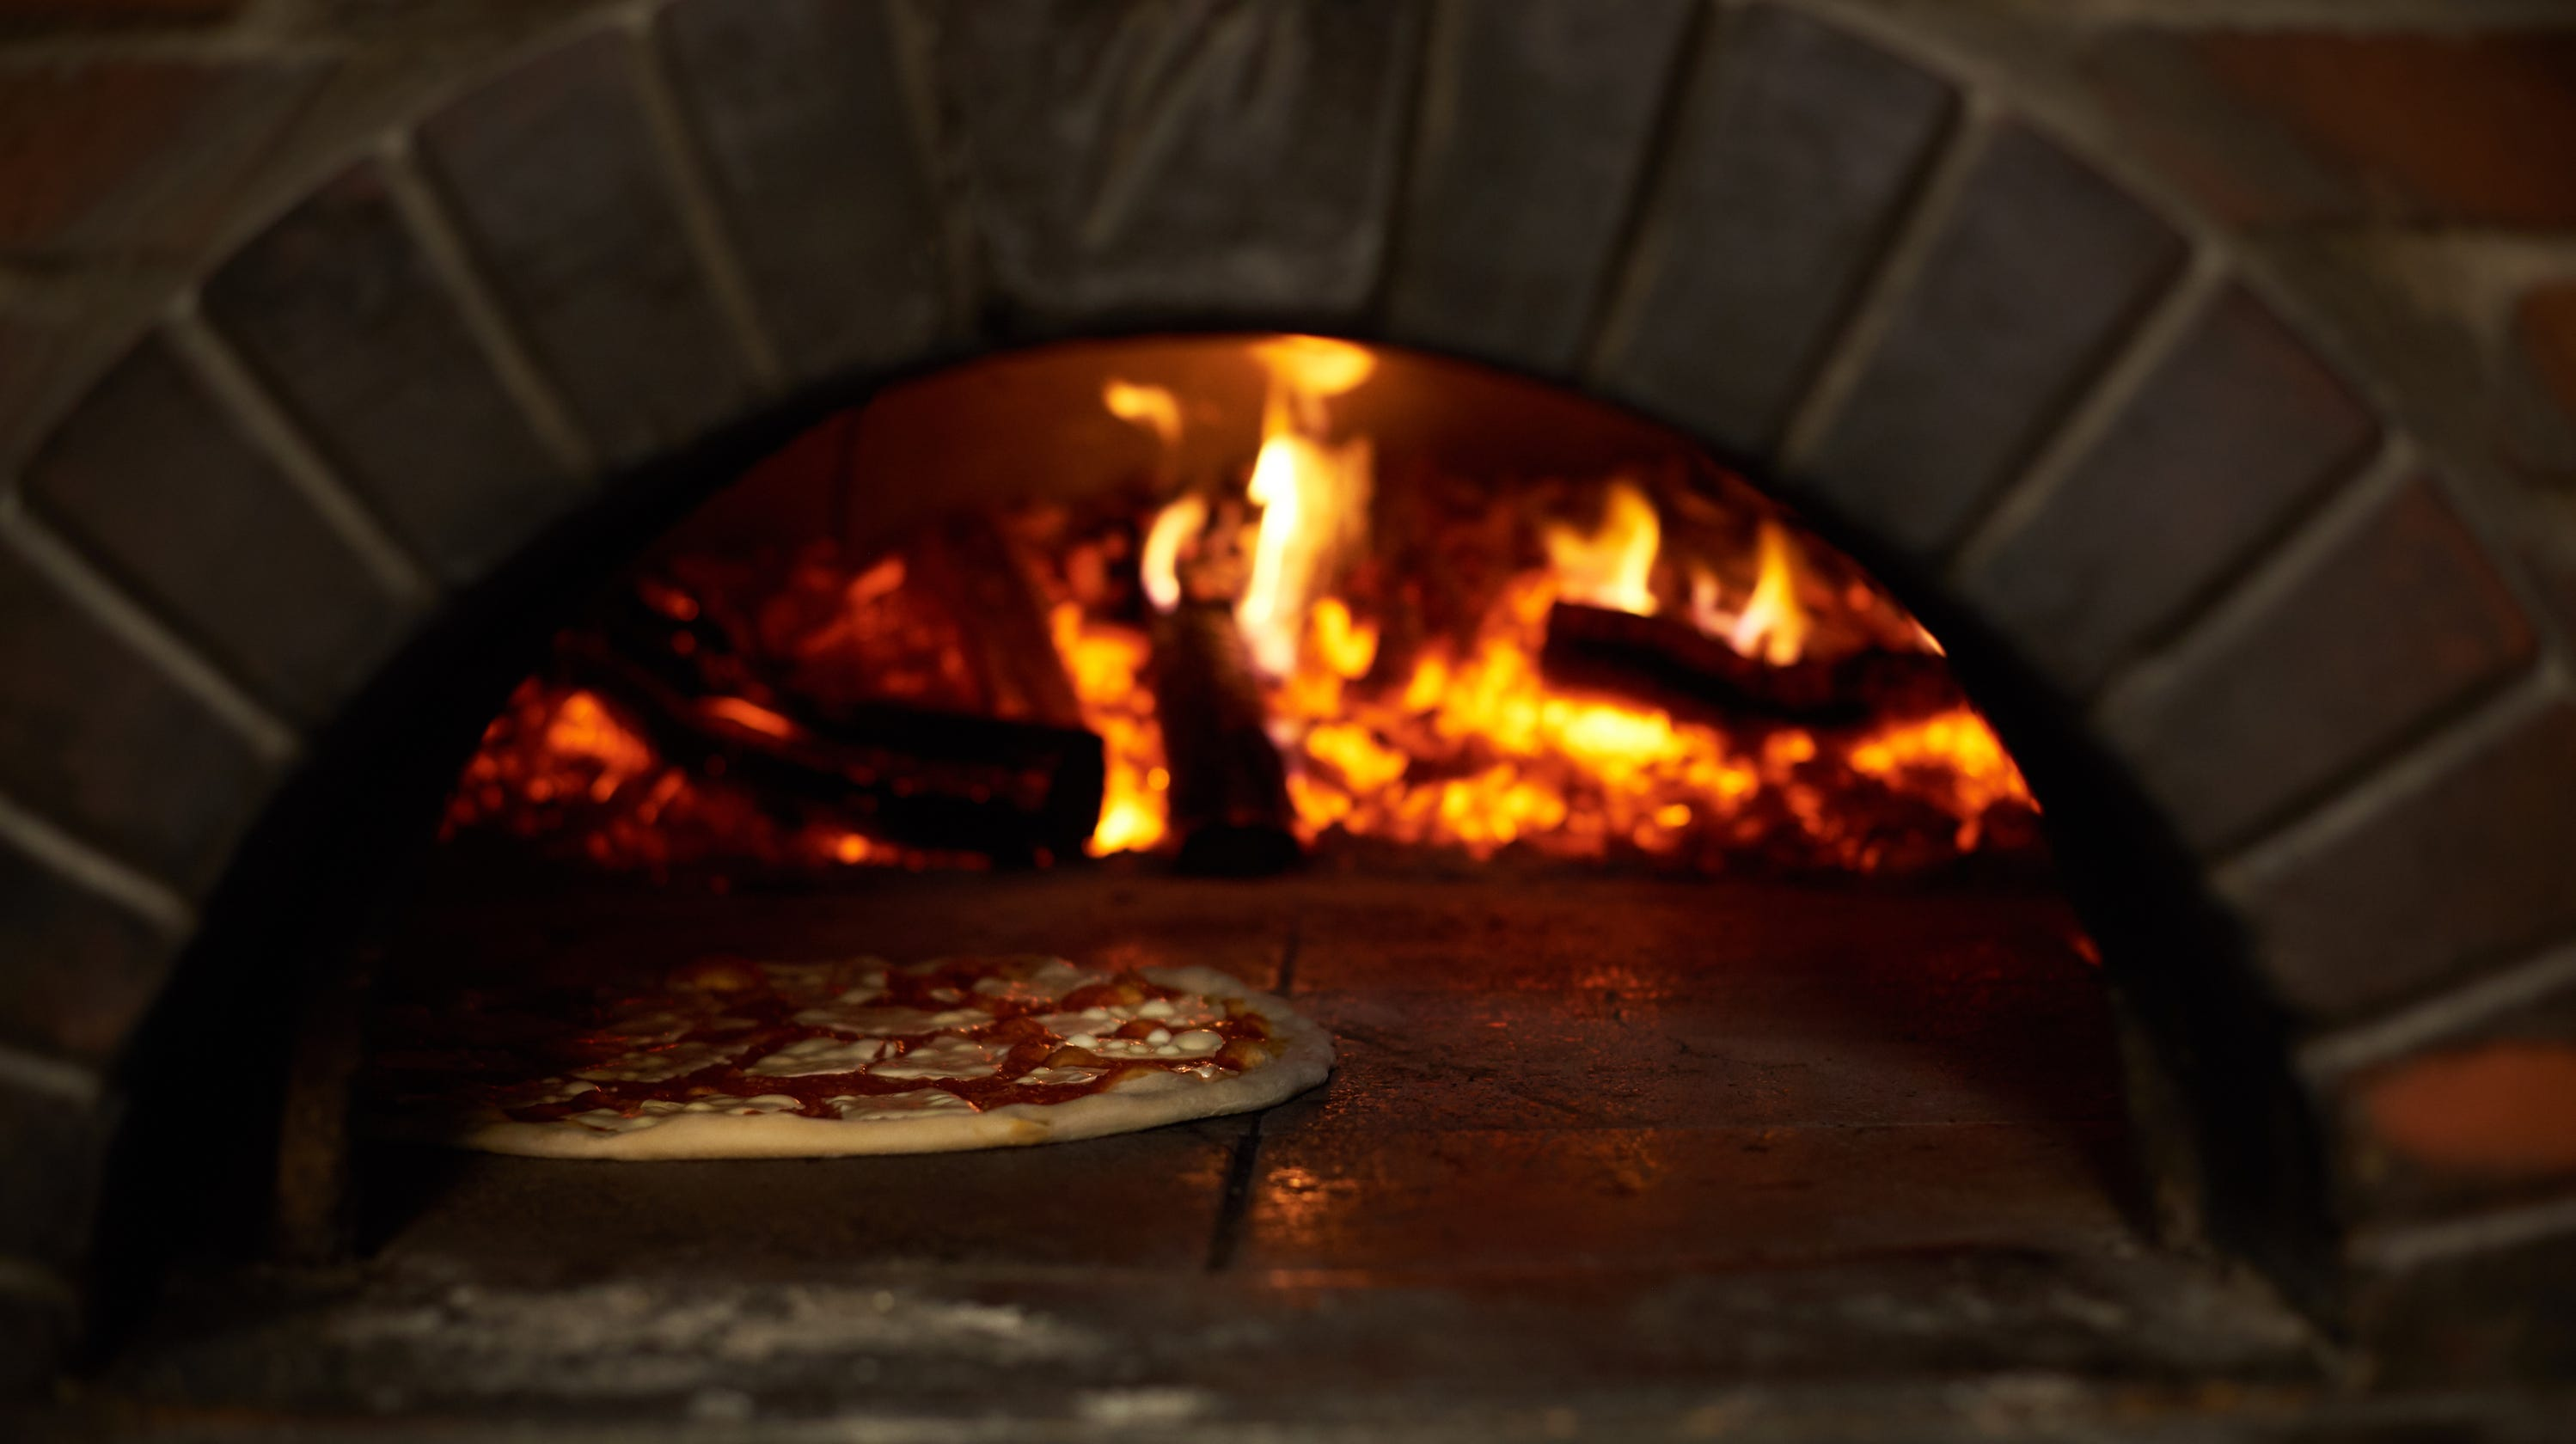 Grindage Wood Fired Pizza Sandwiches Opens In Place Of Mancinnis